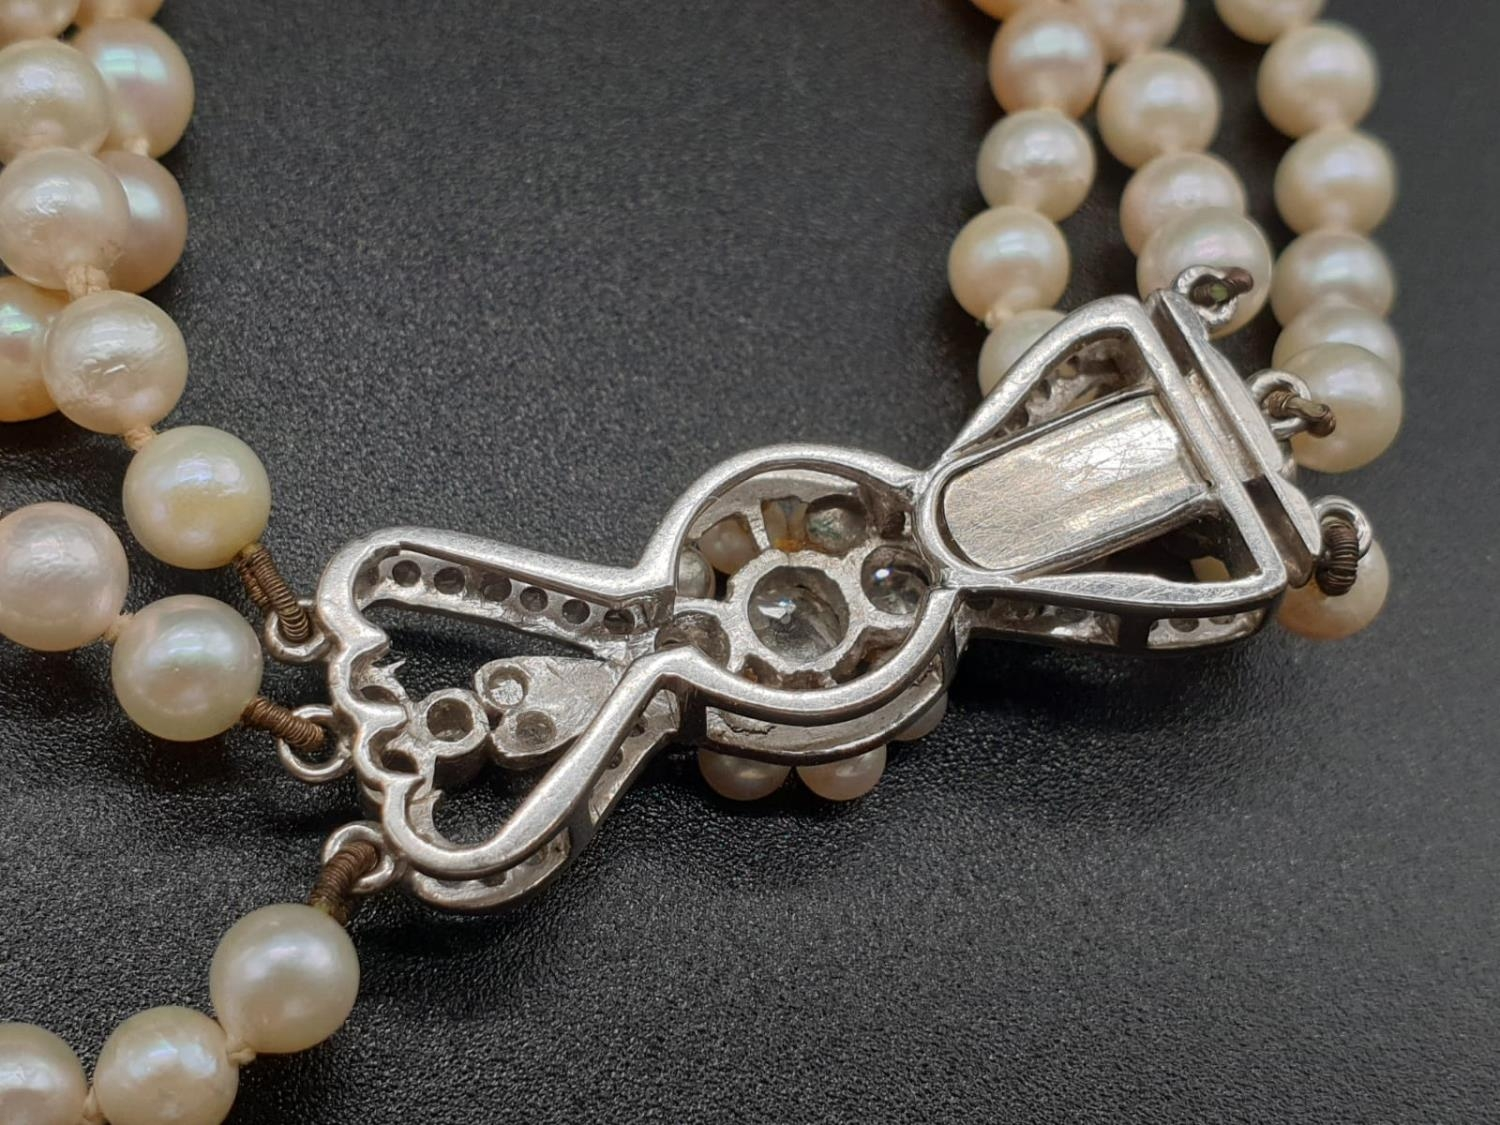 A 3 ROW GRADUATED PEARL NECKLACE WITH PLATINUM AND DIAMOND CLASP 48gms and 18cms in length - Image 4 of 6